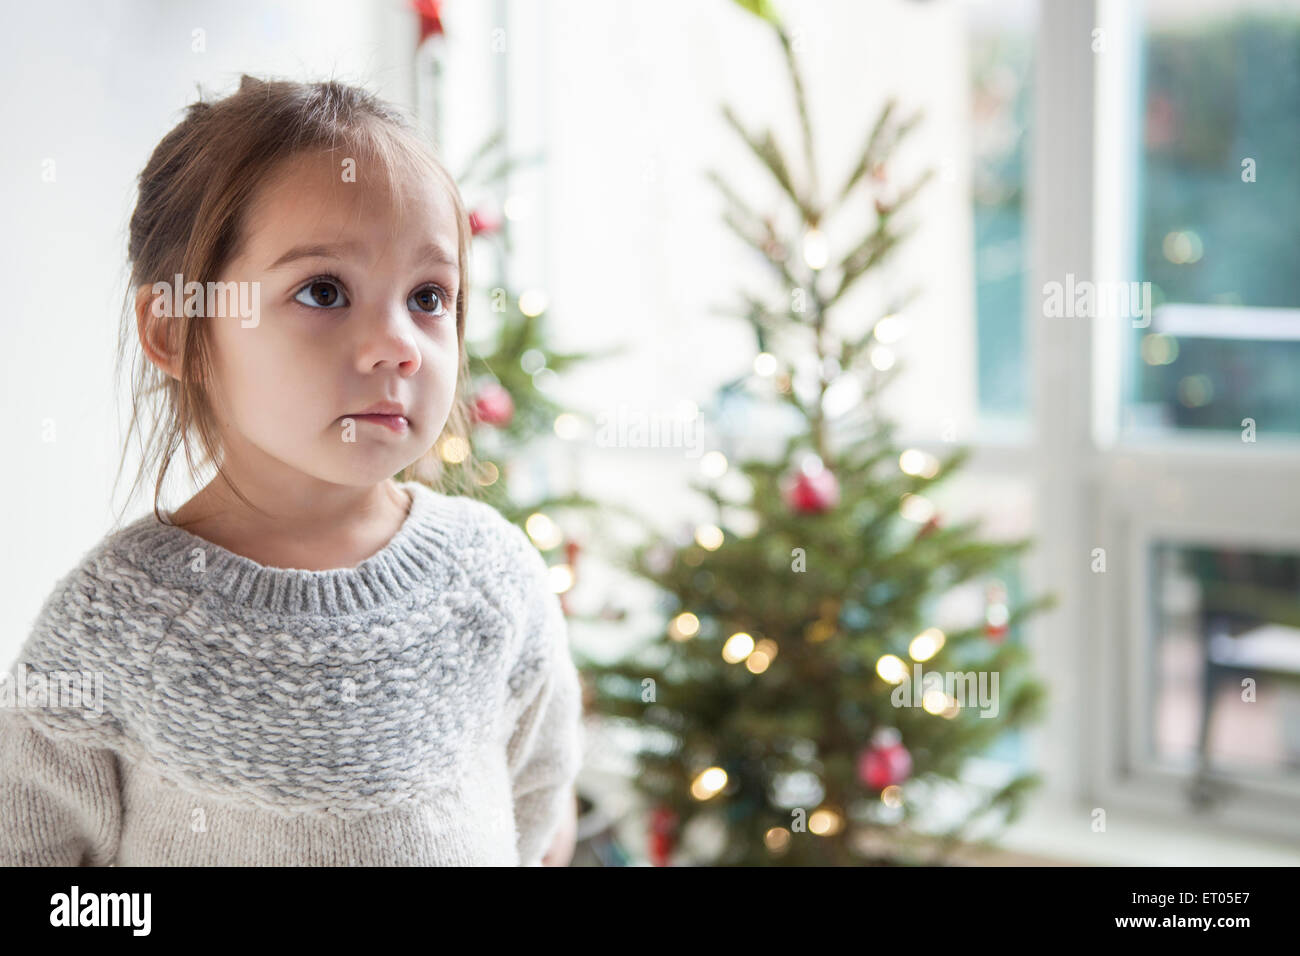 Wide-eyed girl looking up in front of Christmas tree - Stock Image